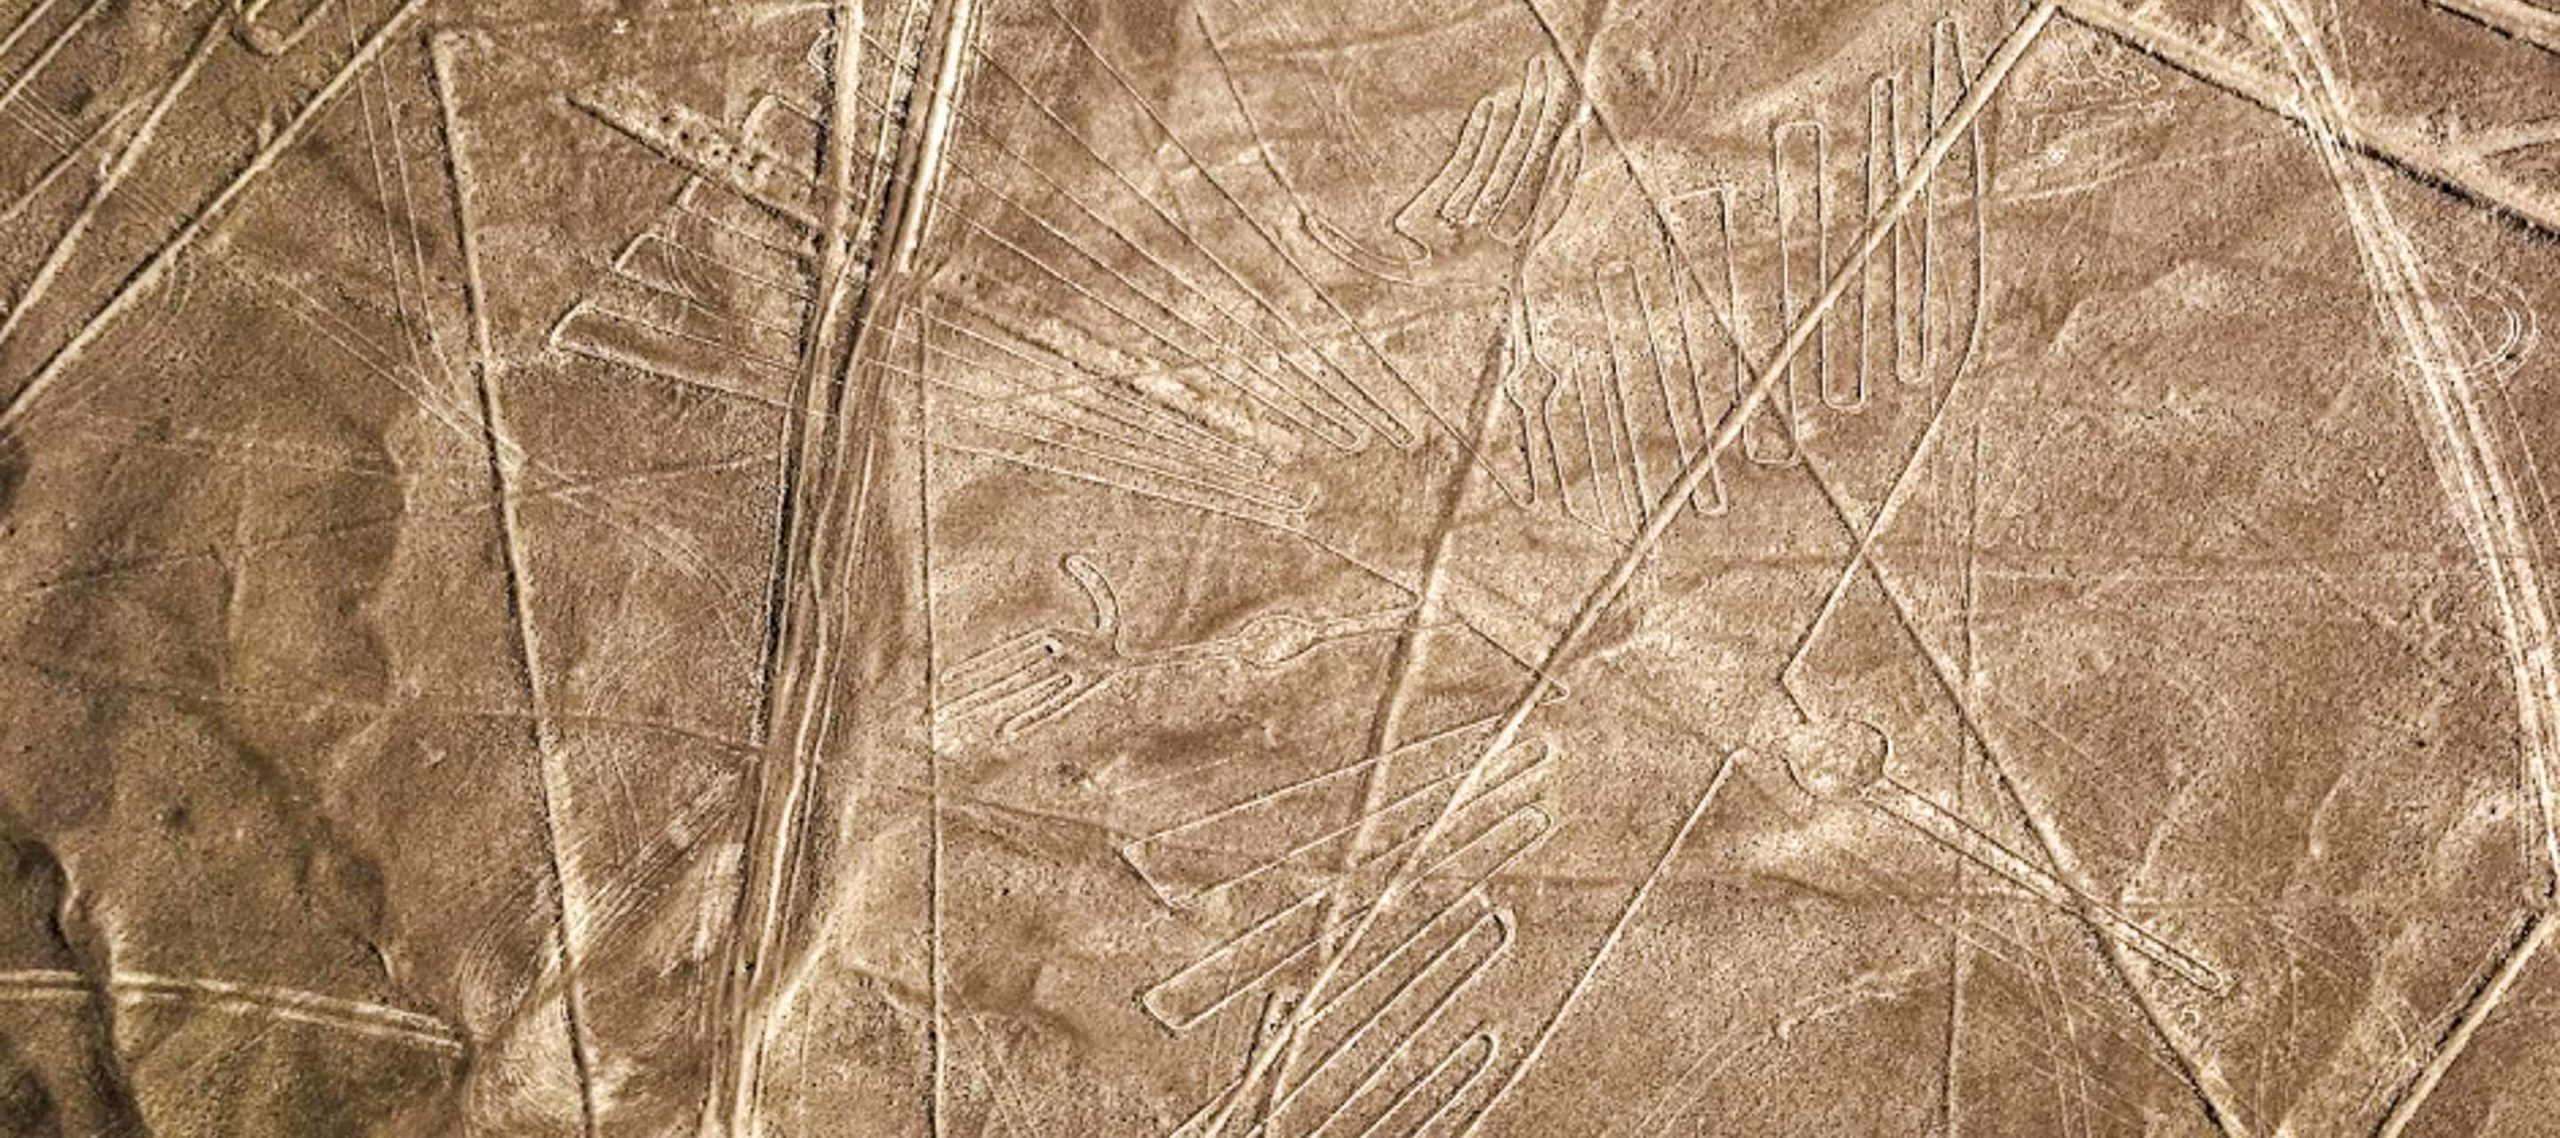 Aerial view of Nazca Lines